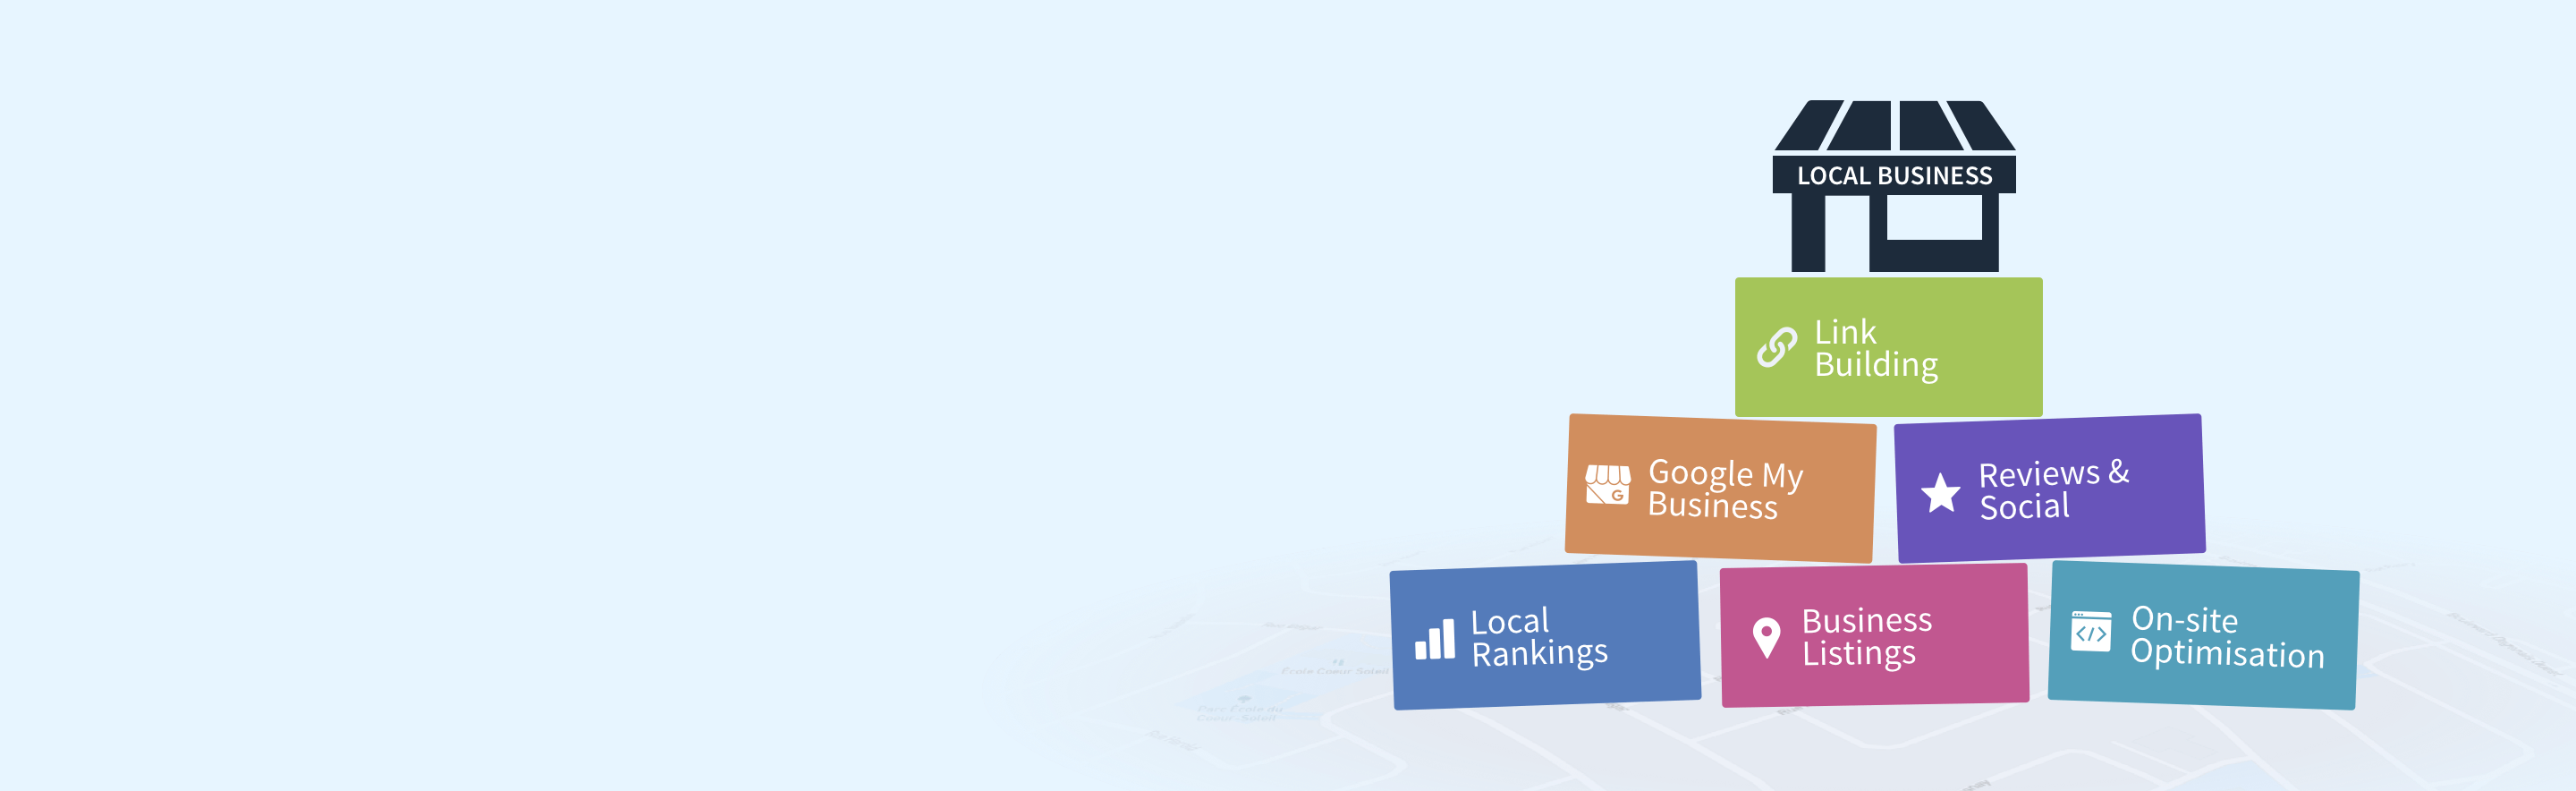 about-local-seo-hero.png (2880×884)